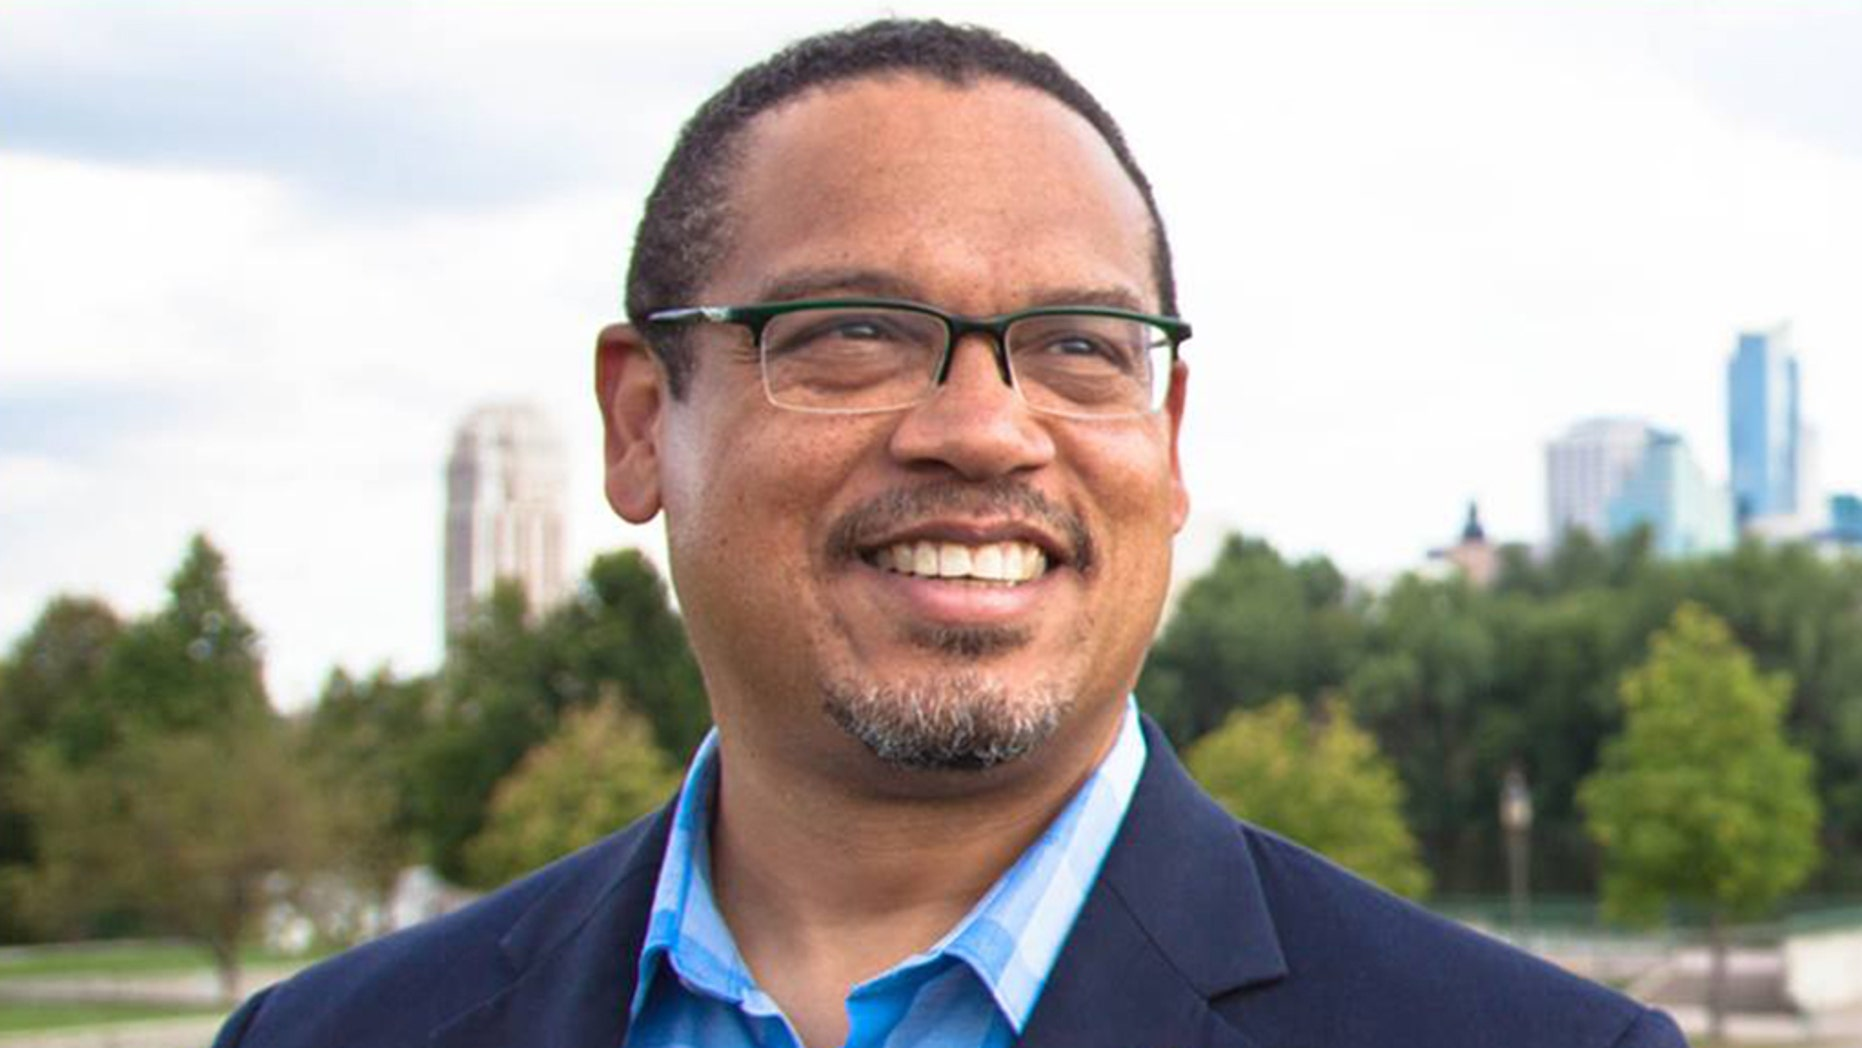 Rep. Keith Ellison has been accused of emotional and physical abuse by a former girlfriend. He said it never happened.